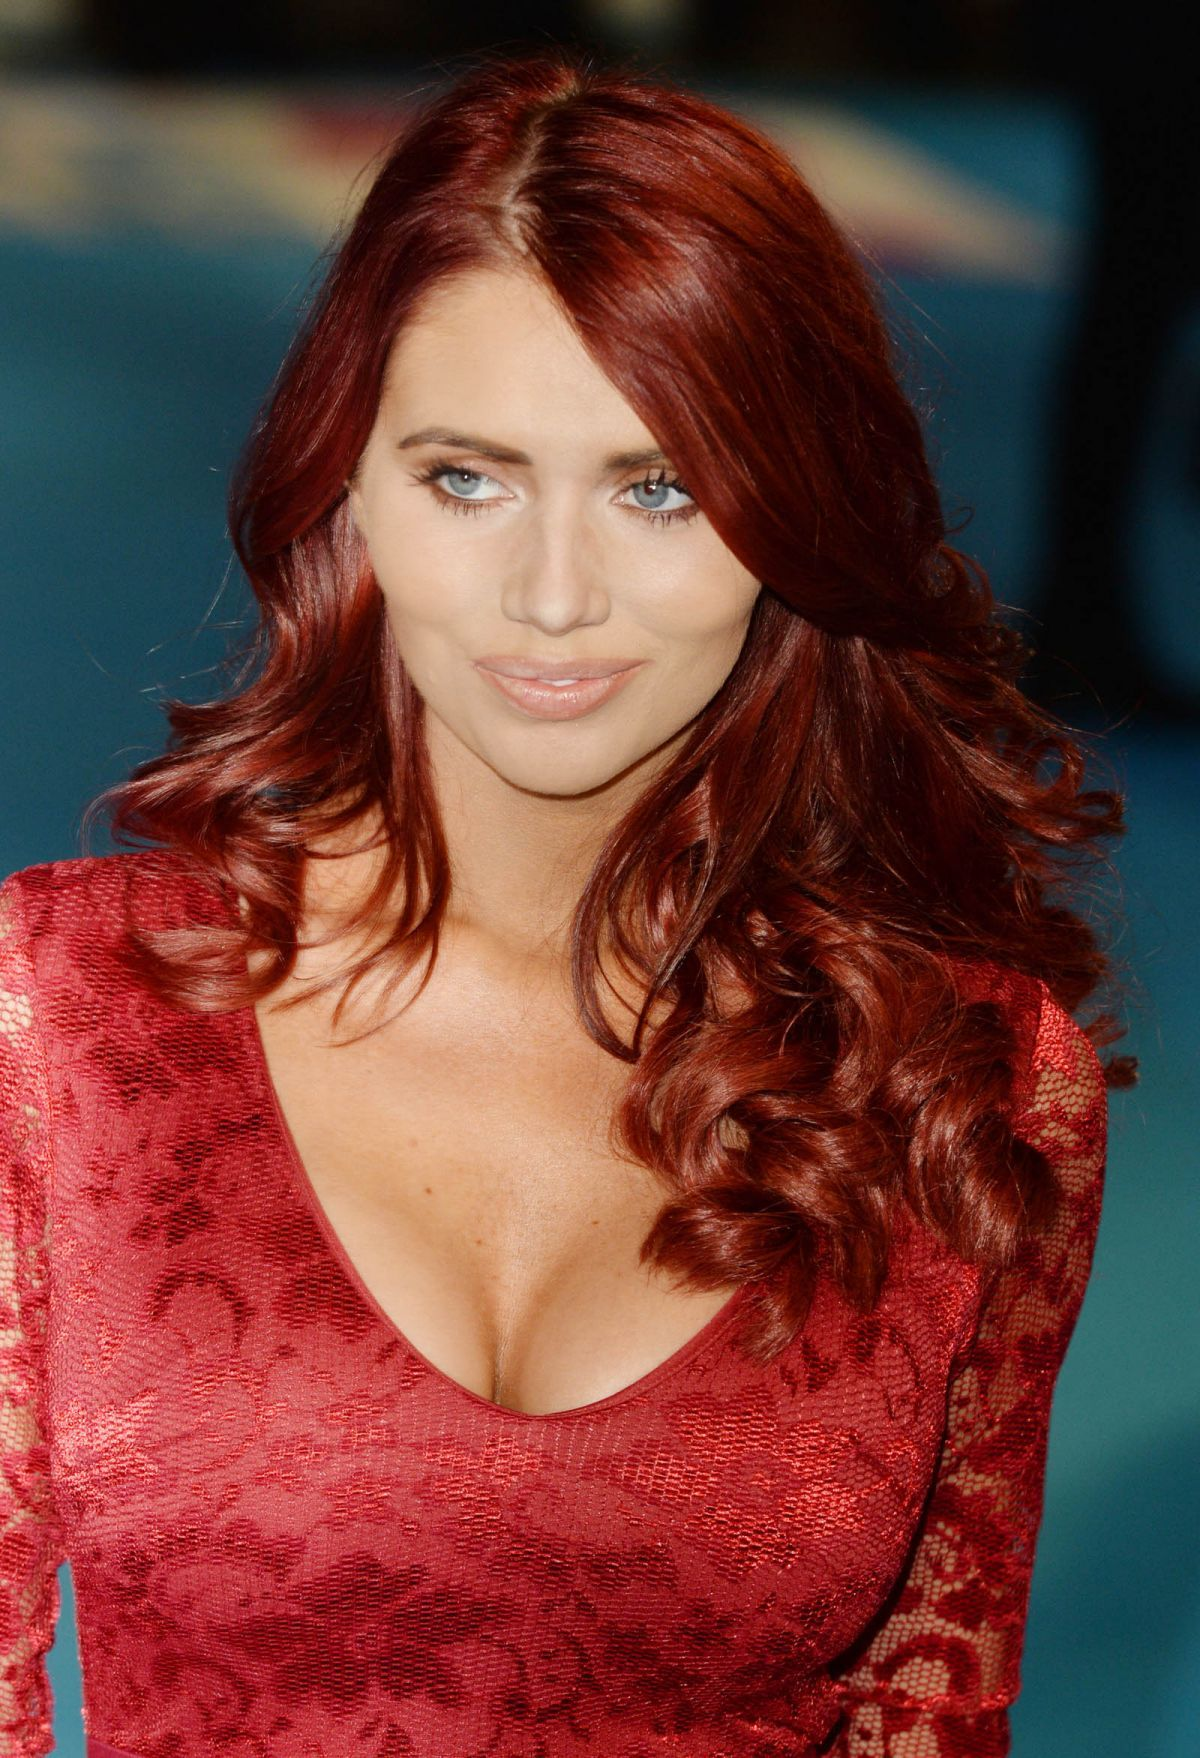 Young Amy Childs nudes (56 foto and video), Tits, Hot, Twitter, braless 2017